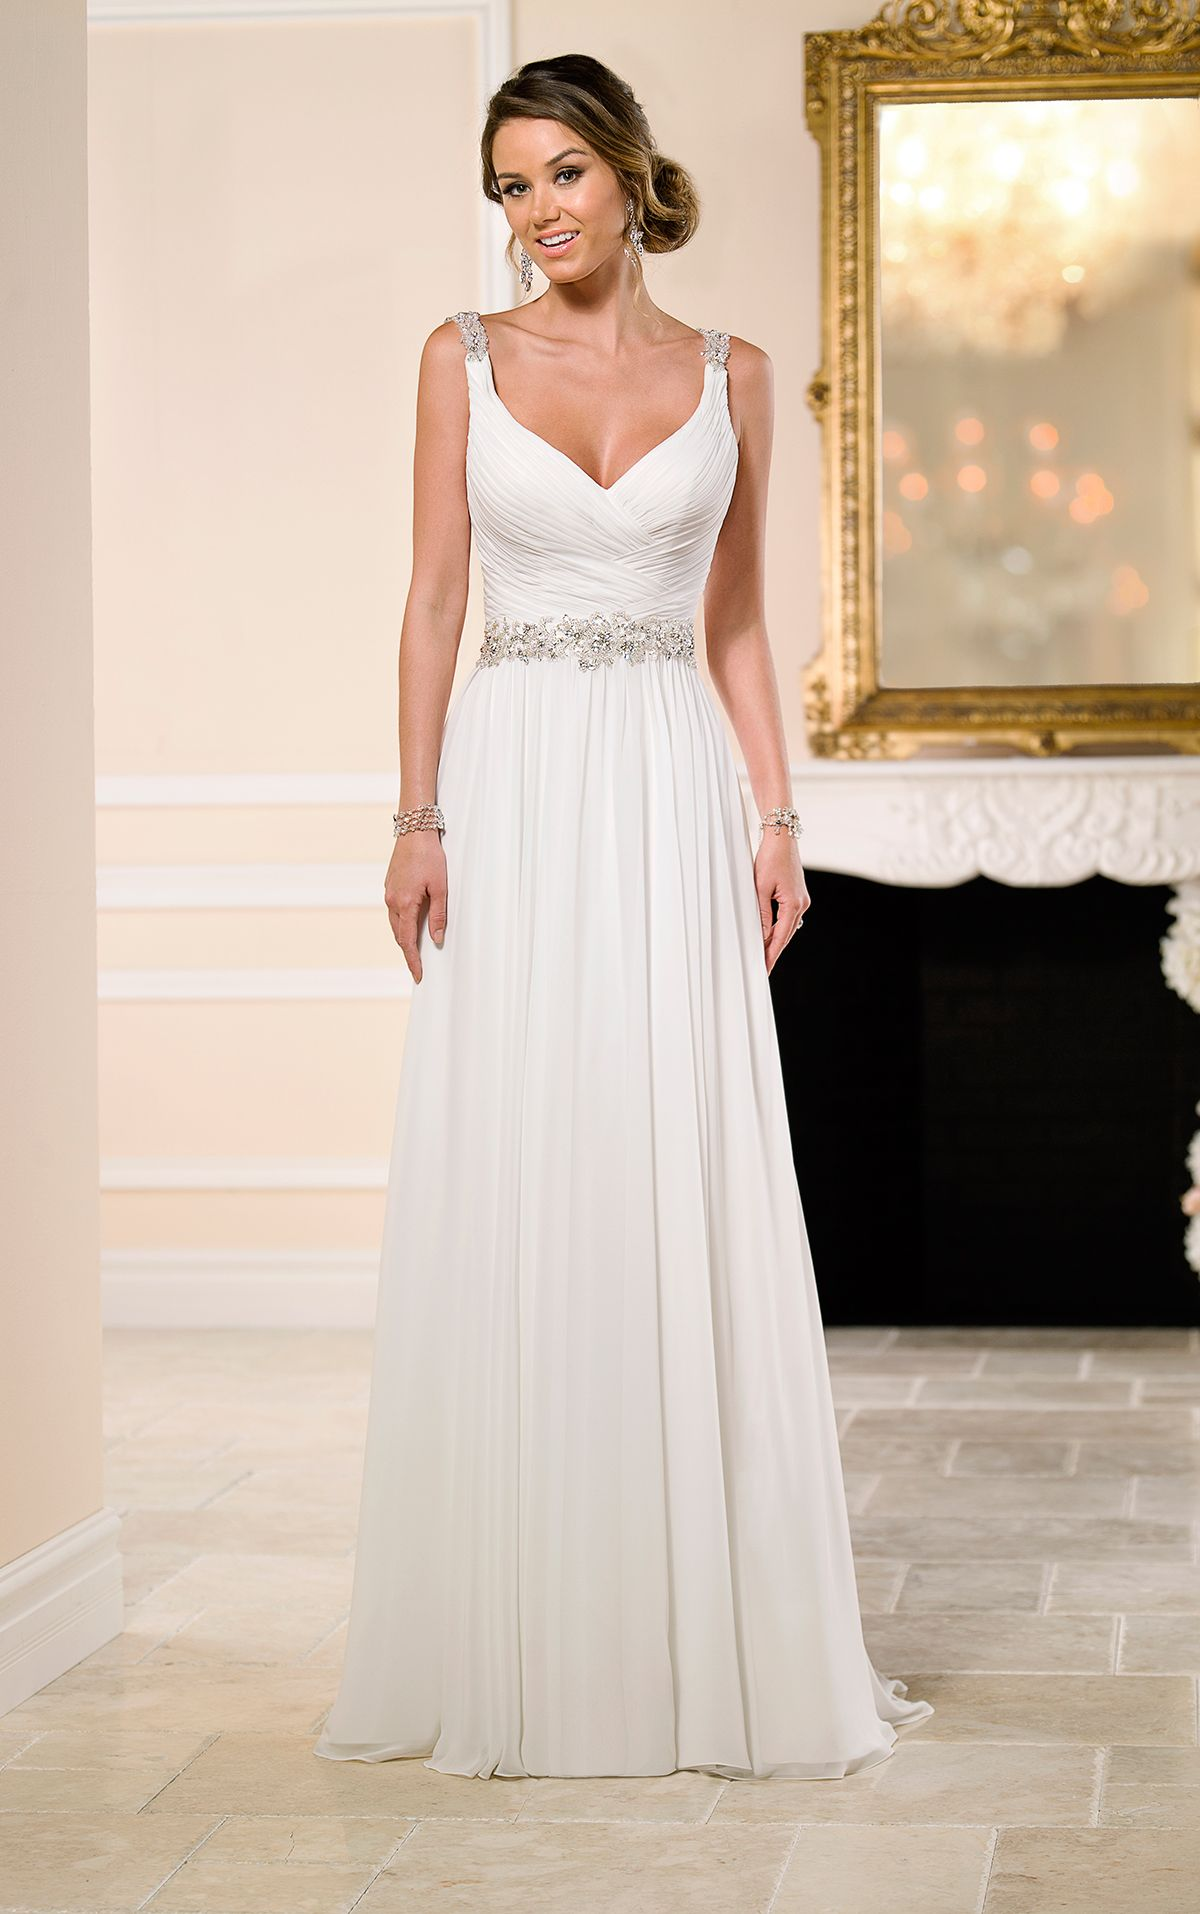 107e34b7aff4 Classic and ethereal, this chiffon Grecian-style wedding gown from the  Stella York collection takes beachside romance to the next level.